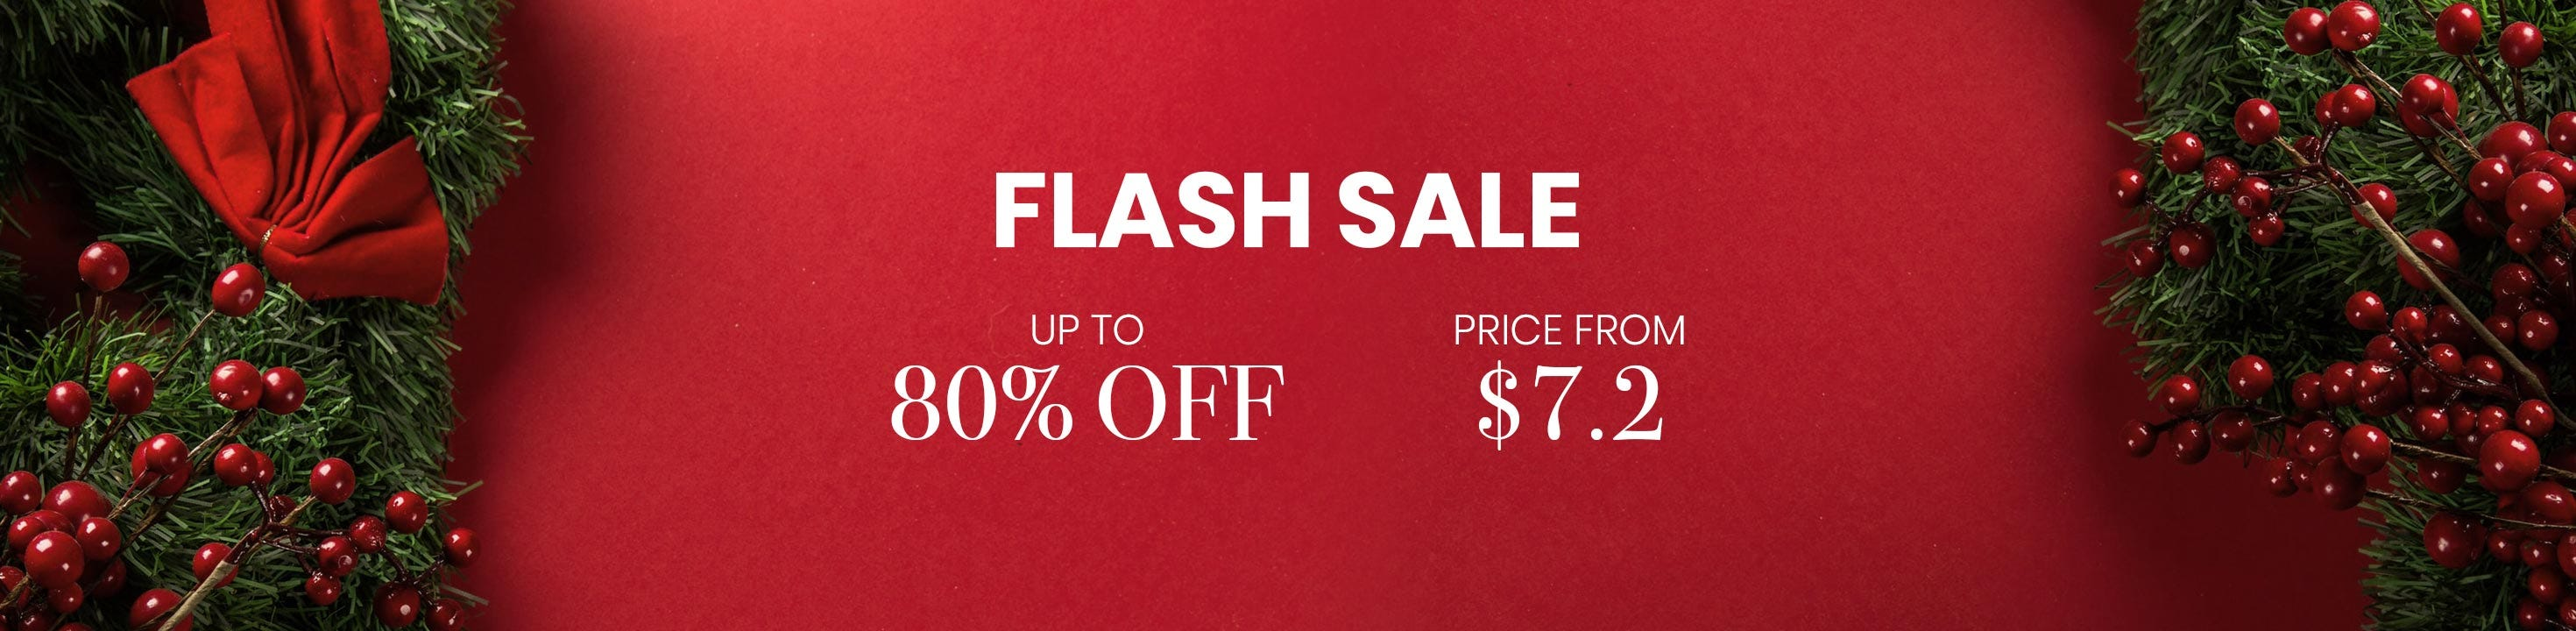 FLASH SALE-CA